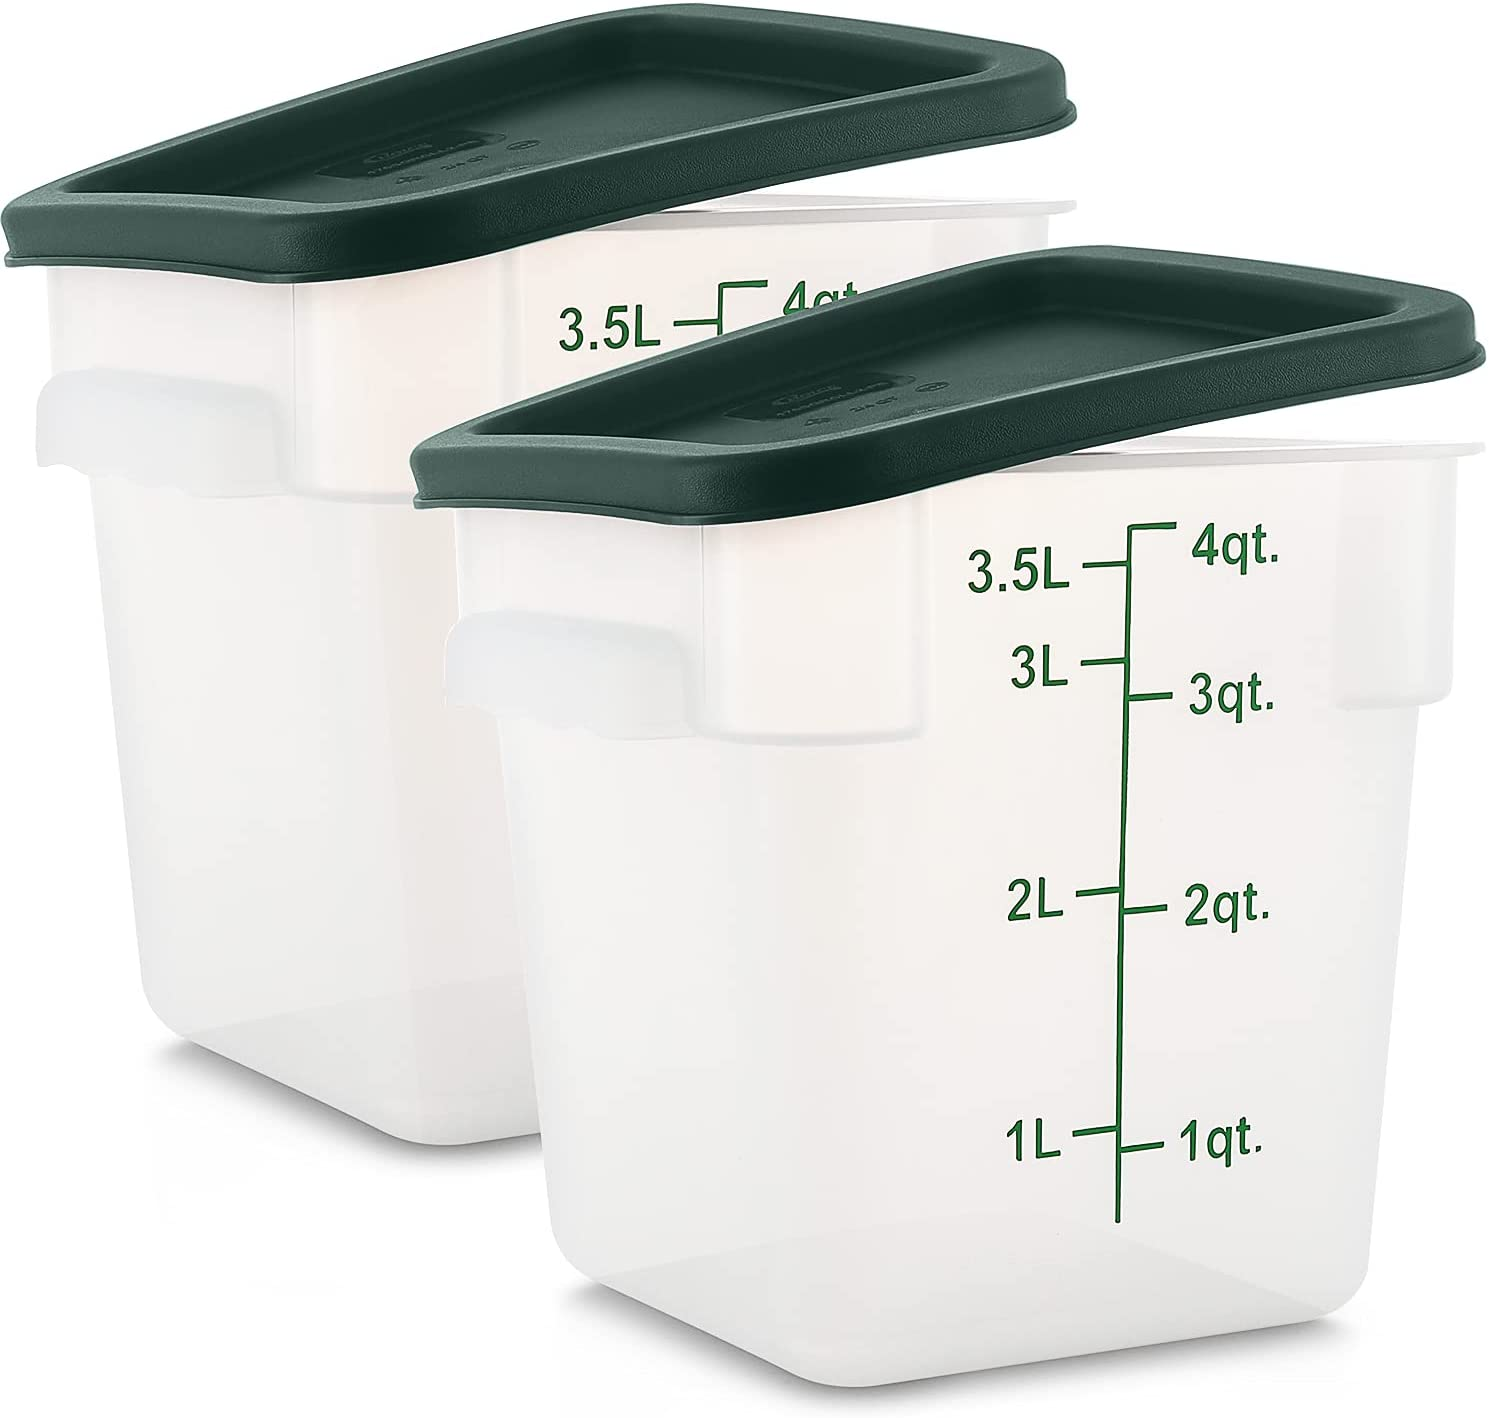 Tafura [Pack of 2] 4 Qt Square Food Storage Container with Lid, Sugar and Flour Keeper, Commercial Grade Plastic Brine Bucket with Cover 4 Quart Sous Vide, Food Prep, Brining Canister. BPA Free